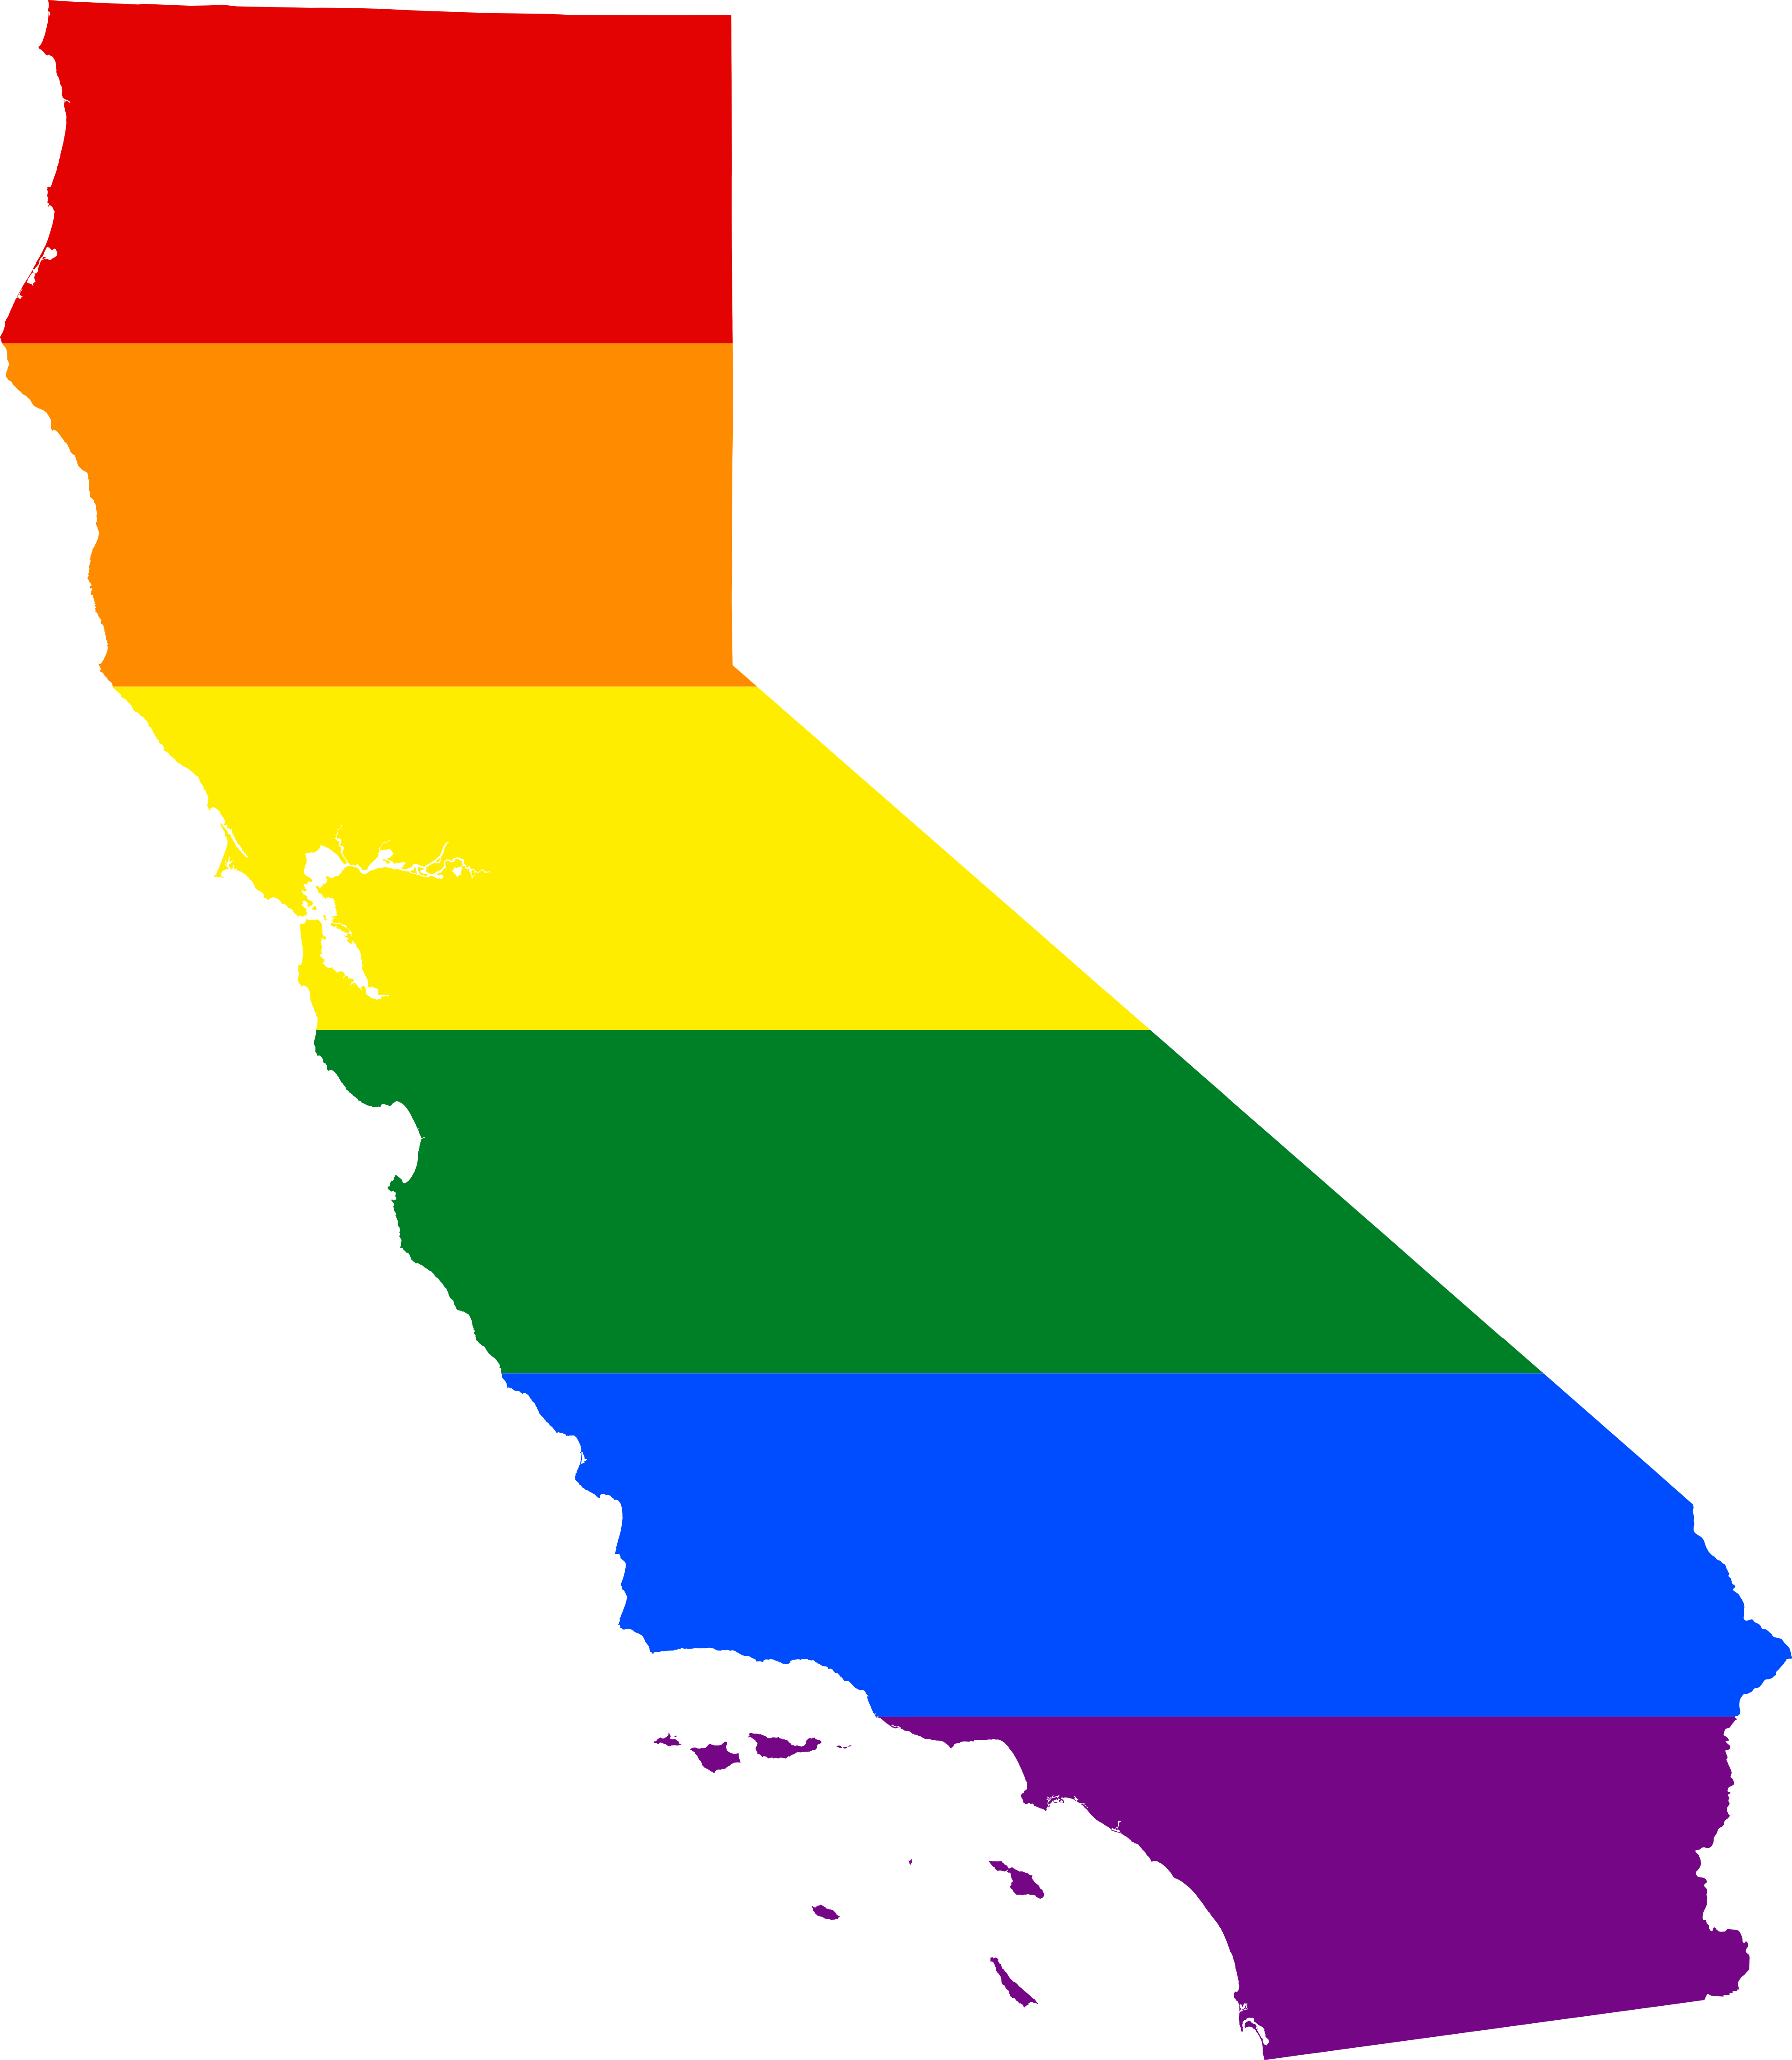 California outline png. File lgbt flag map